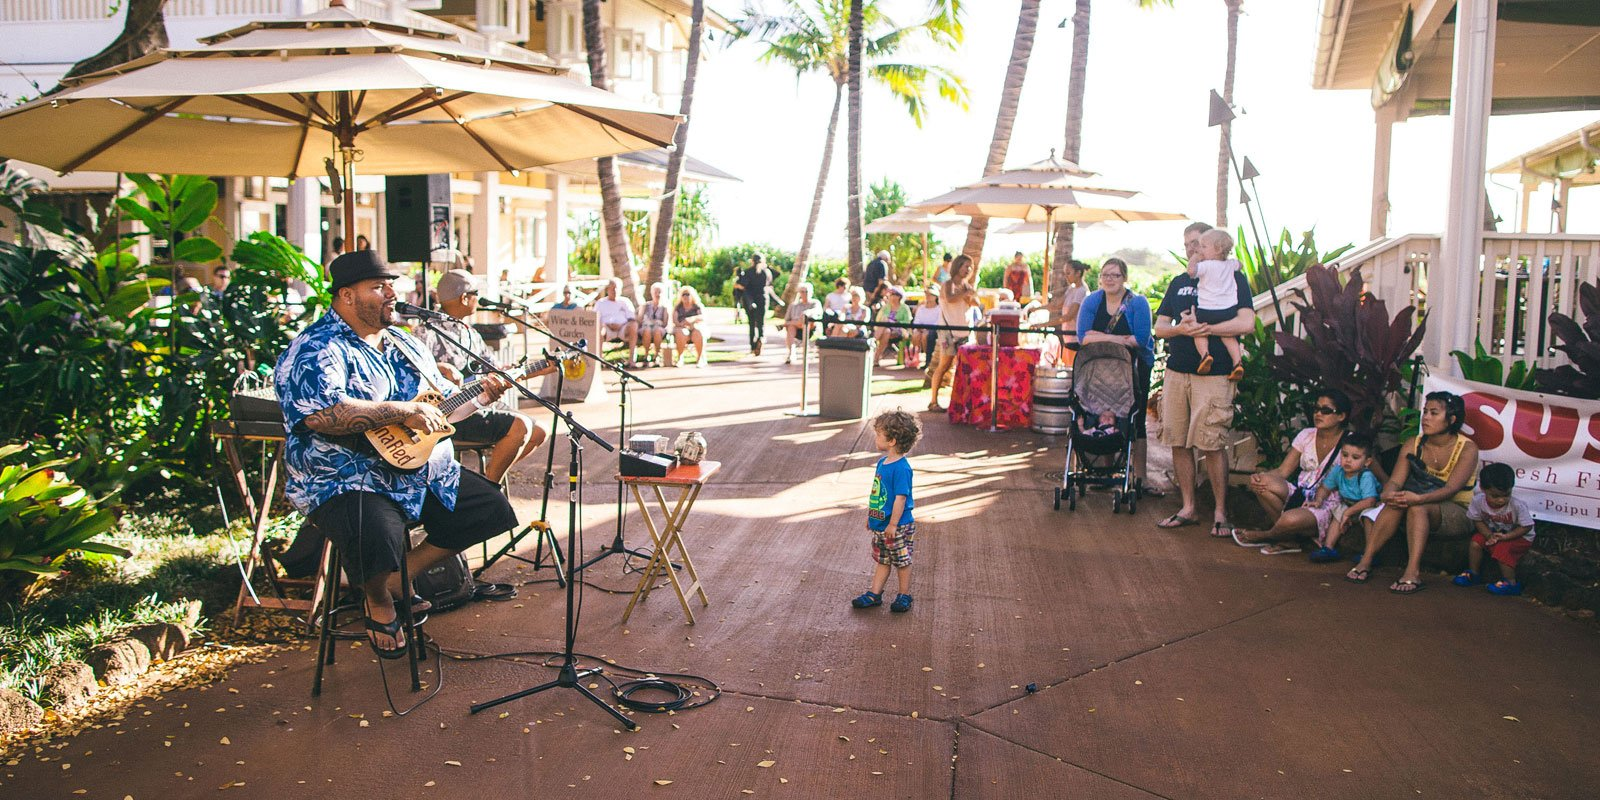 Live music at the Farmer's Market Kauai